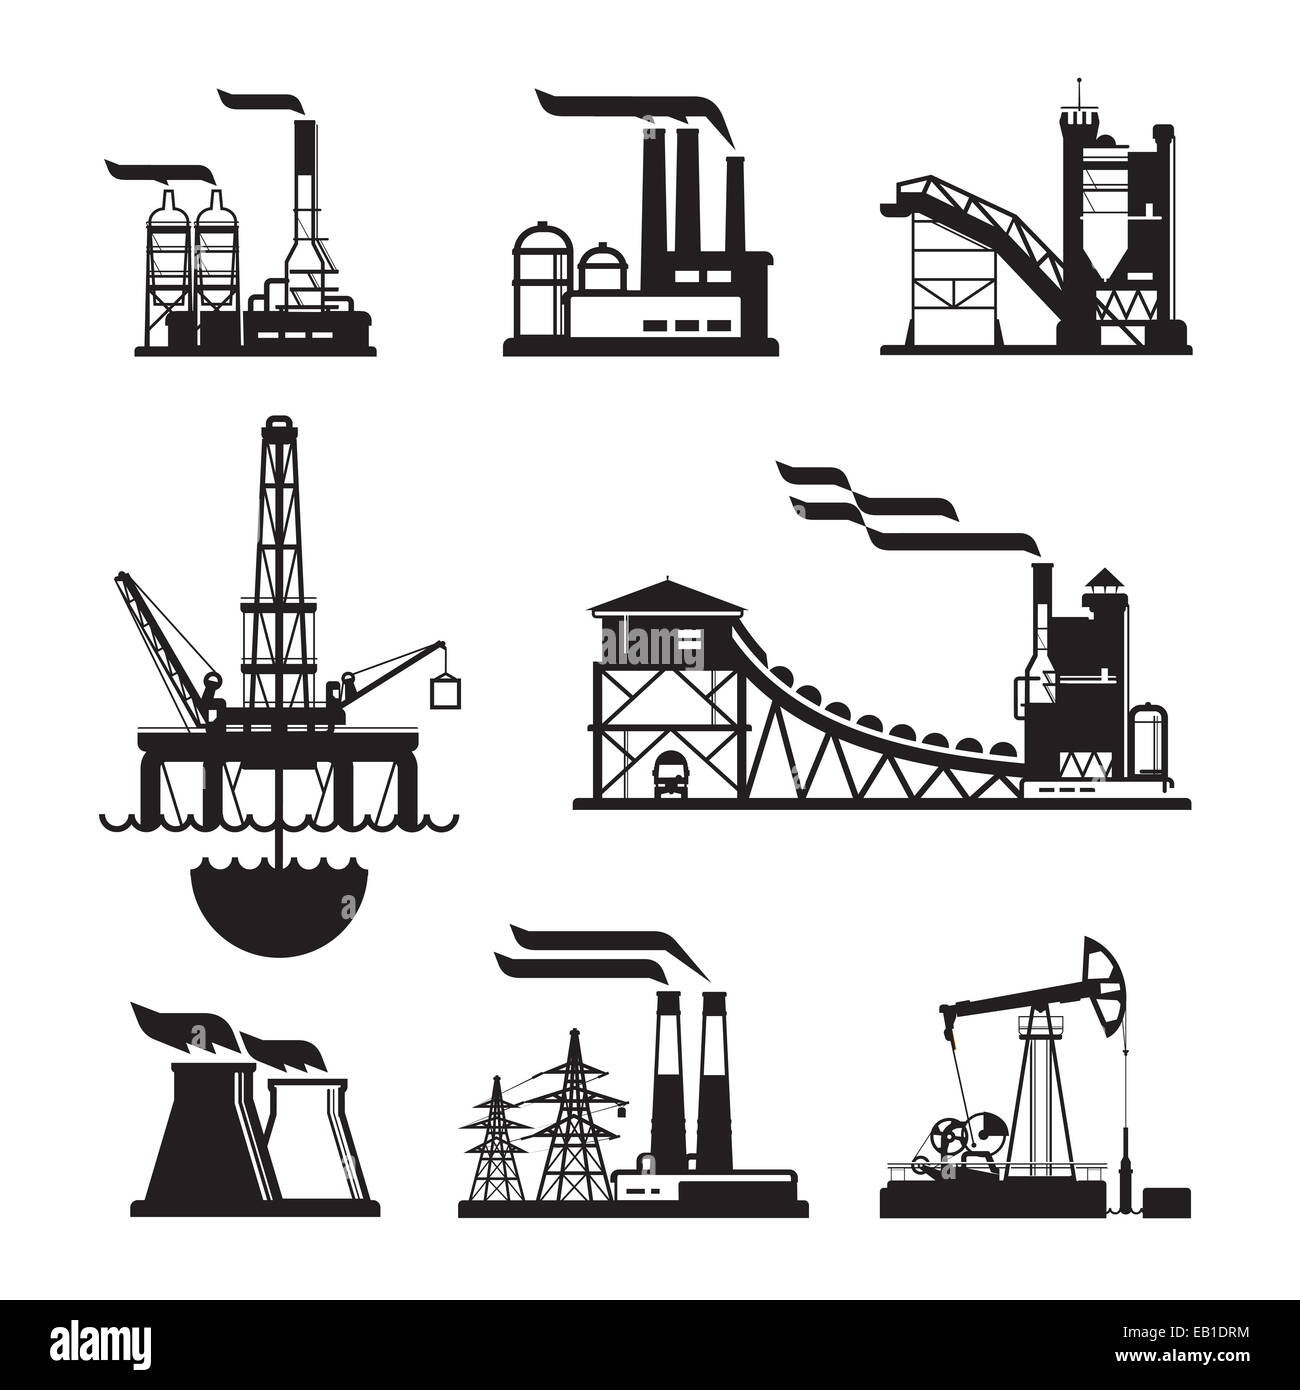 vector black factory icons set on gray. Factory, power plants and industrial buildings - Stock Image